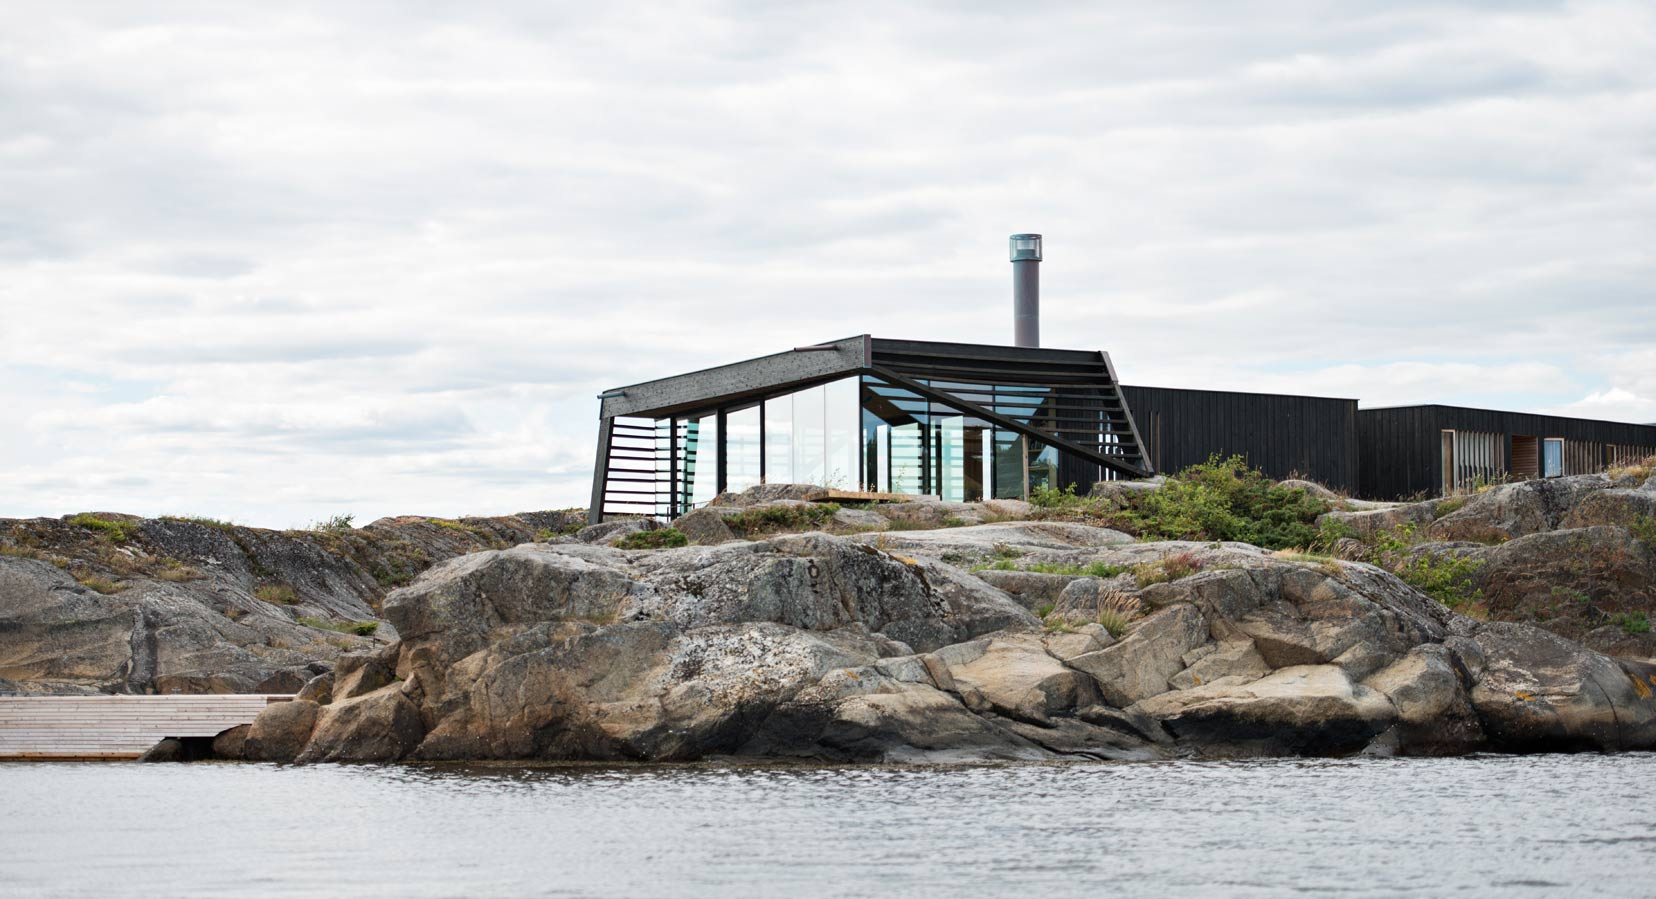 Poetic and Practical: The Lille Arøya Cabin By Lund Hagem